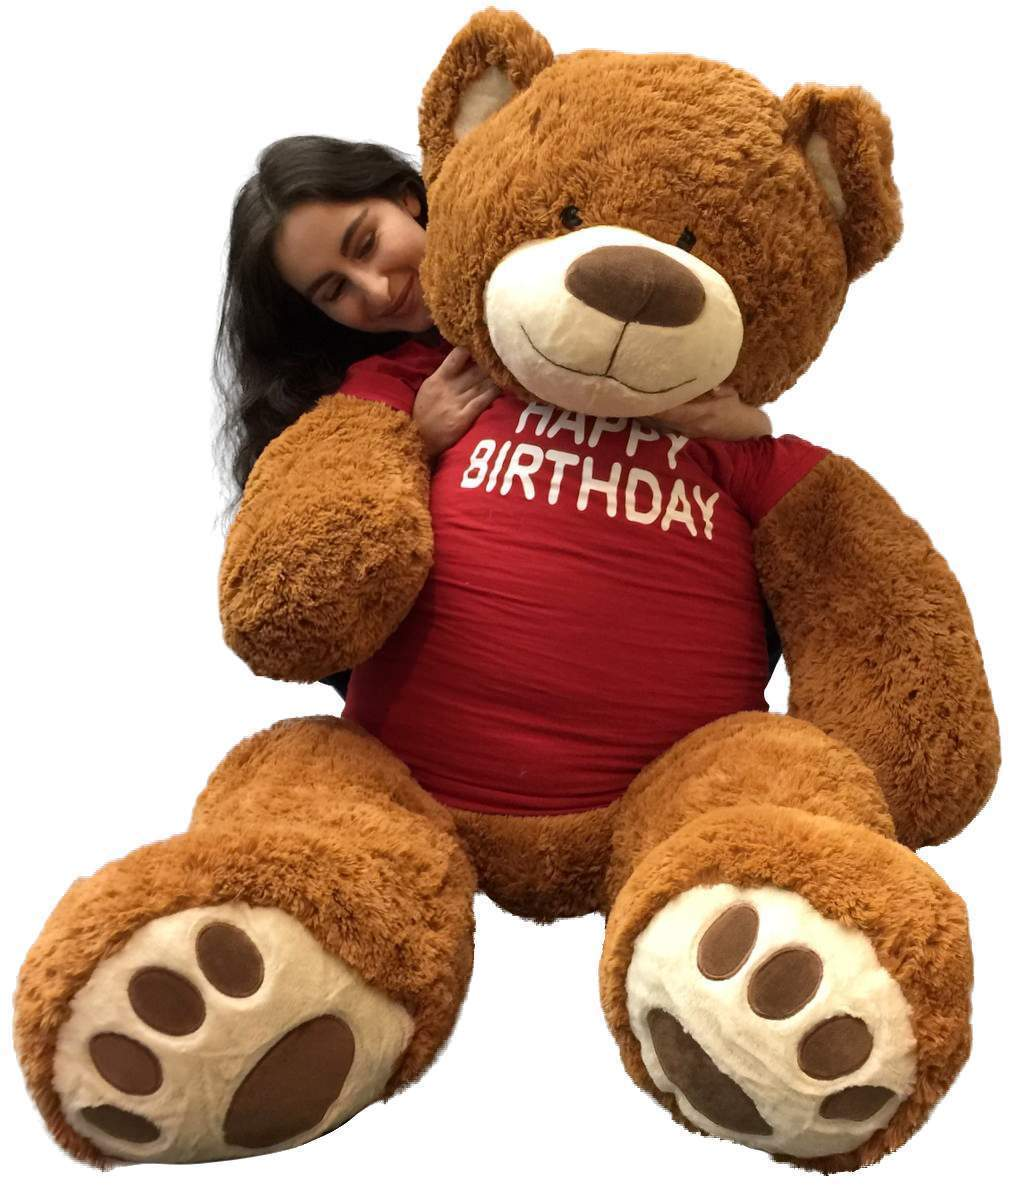 5 Foot Giant Teddy Bear 60 Inches Soft Cookie Dough Brown color HAPPY BIRTHDAY